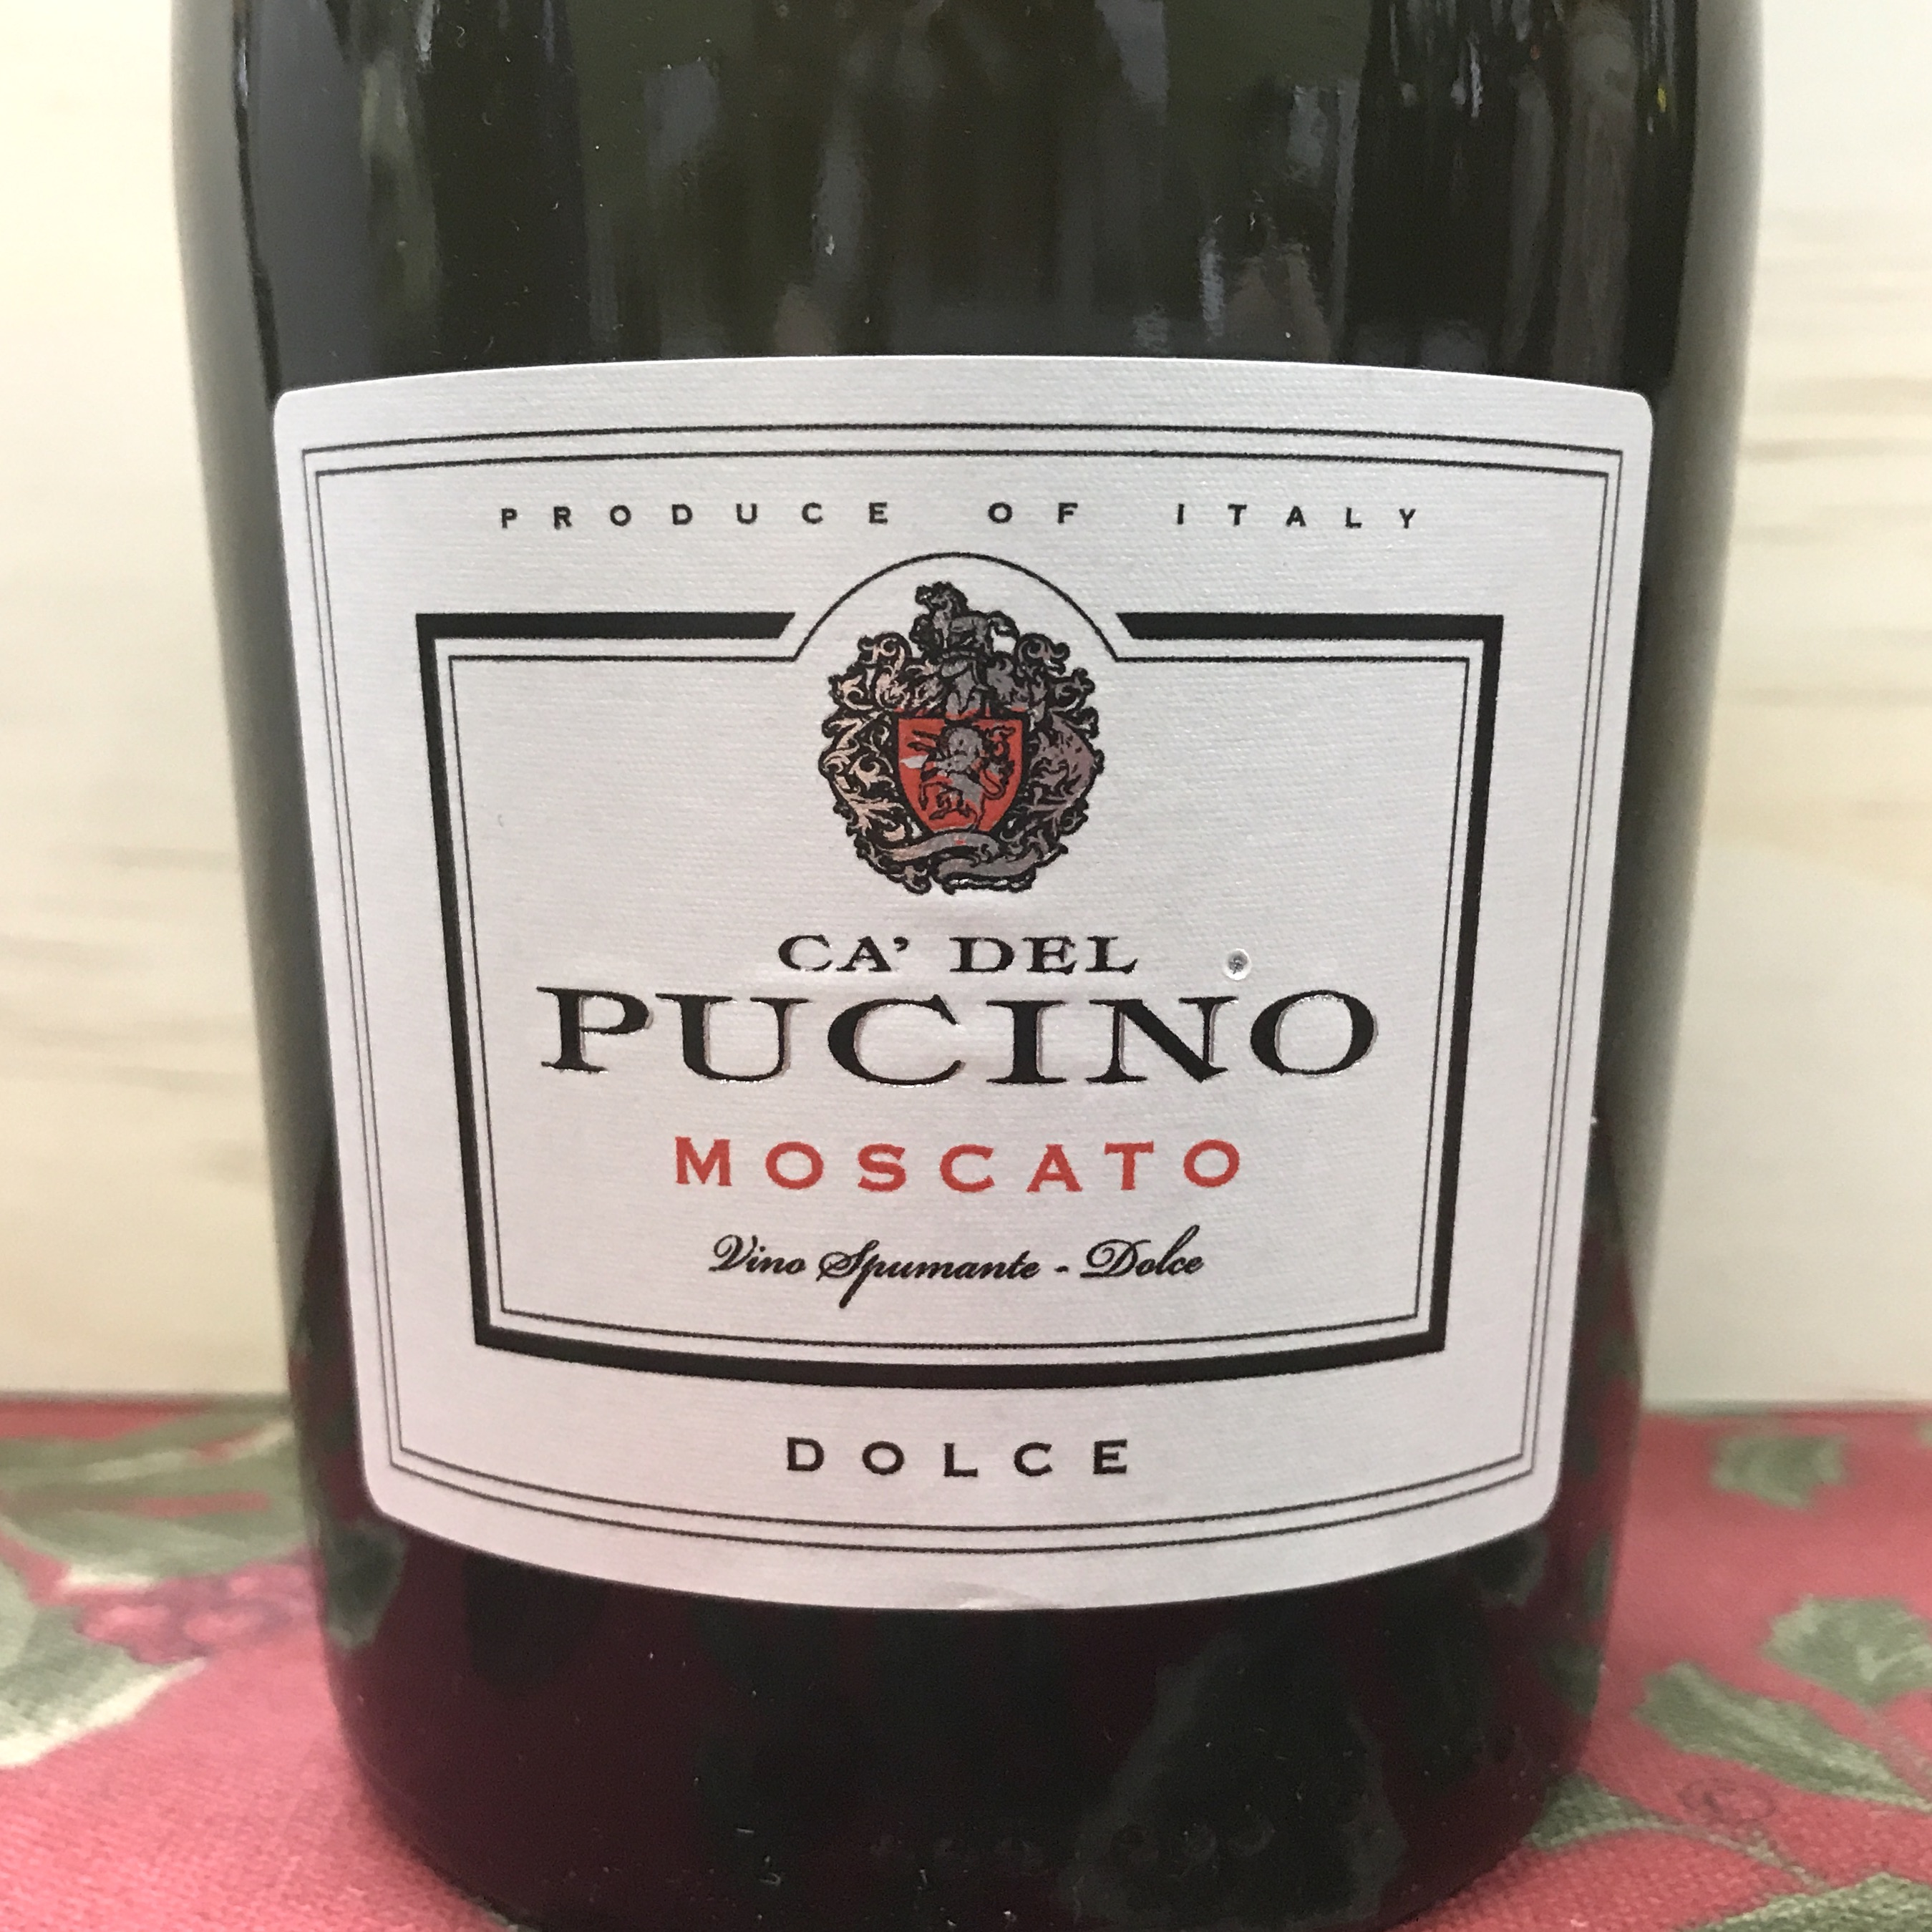 Ca' Del Pucino Moscato Dolce (sweet)